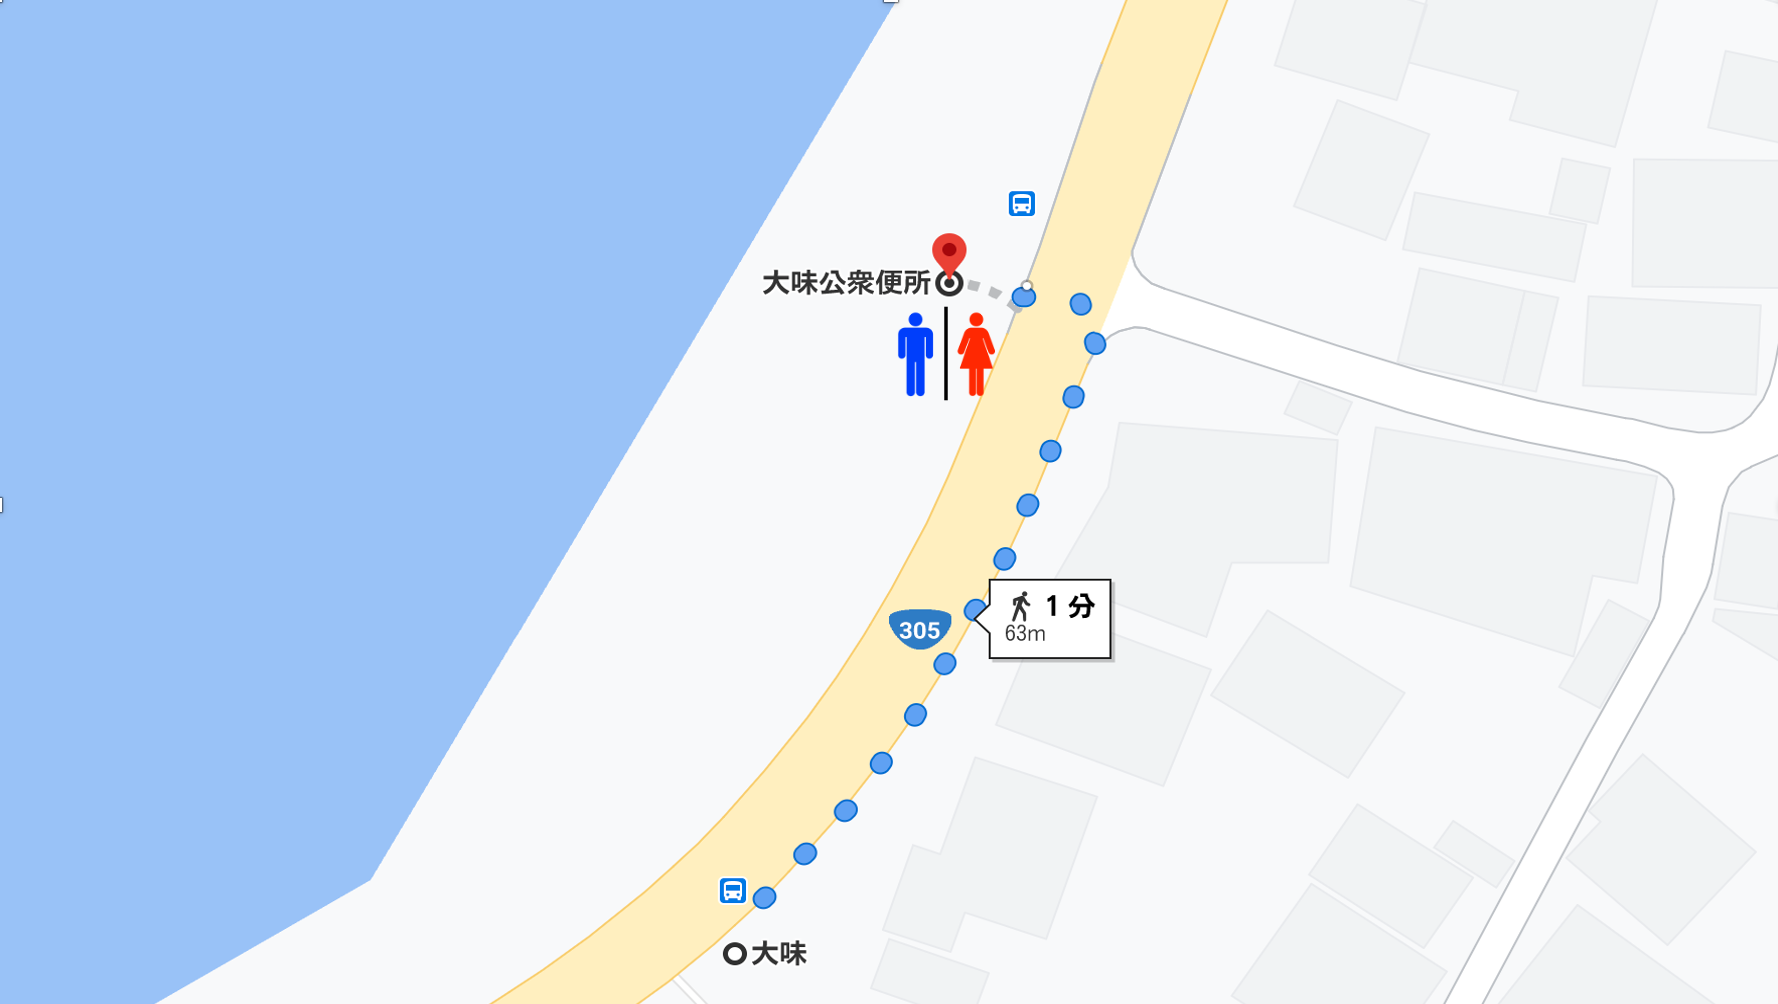 location of restroom from this station